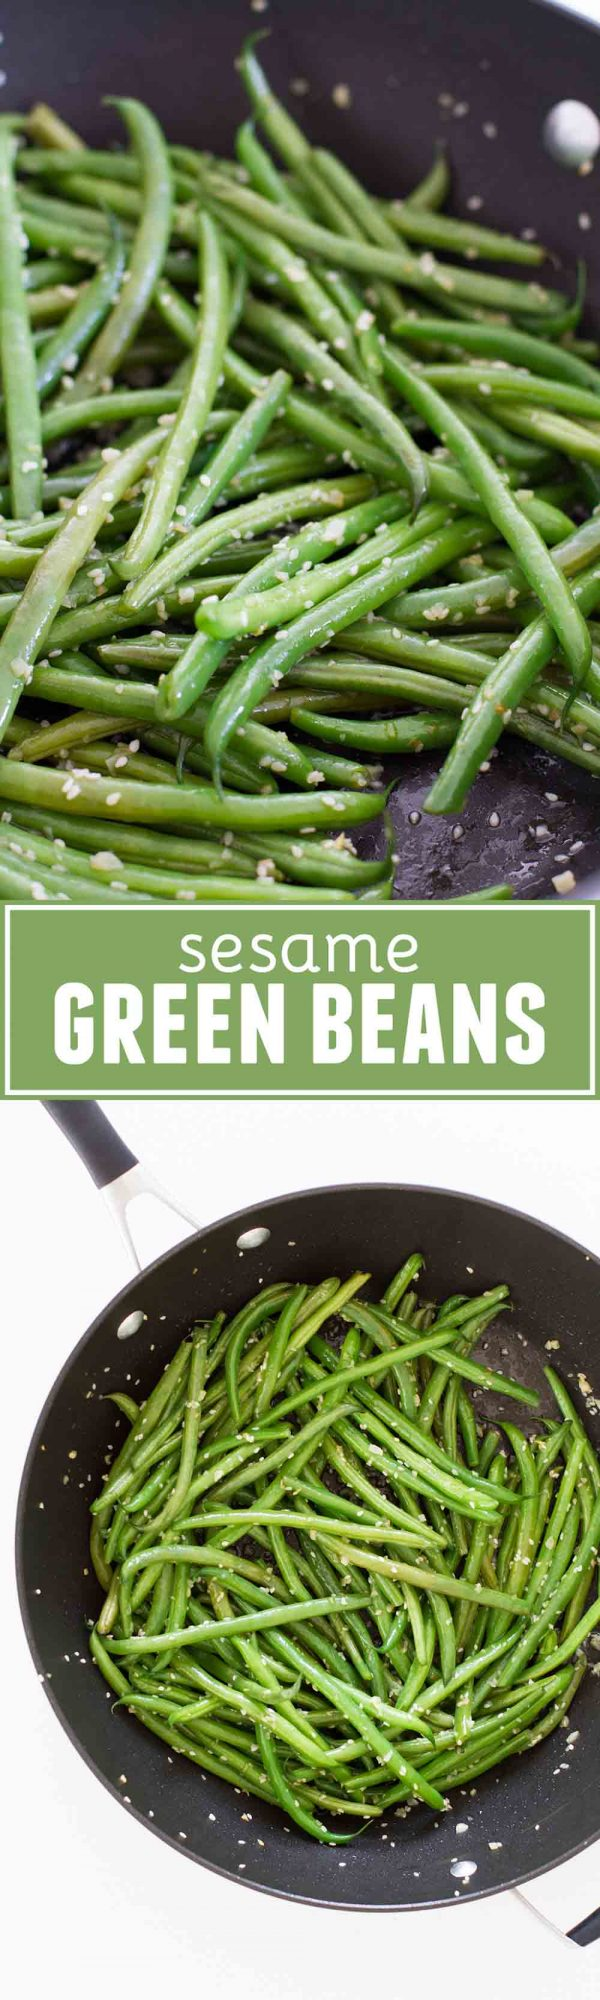 These Sesame Green Beans may seem simple, but they totally pack a punch of flavor! You are only a few ingredients away from a delicious, healthy side dish.